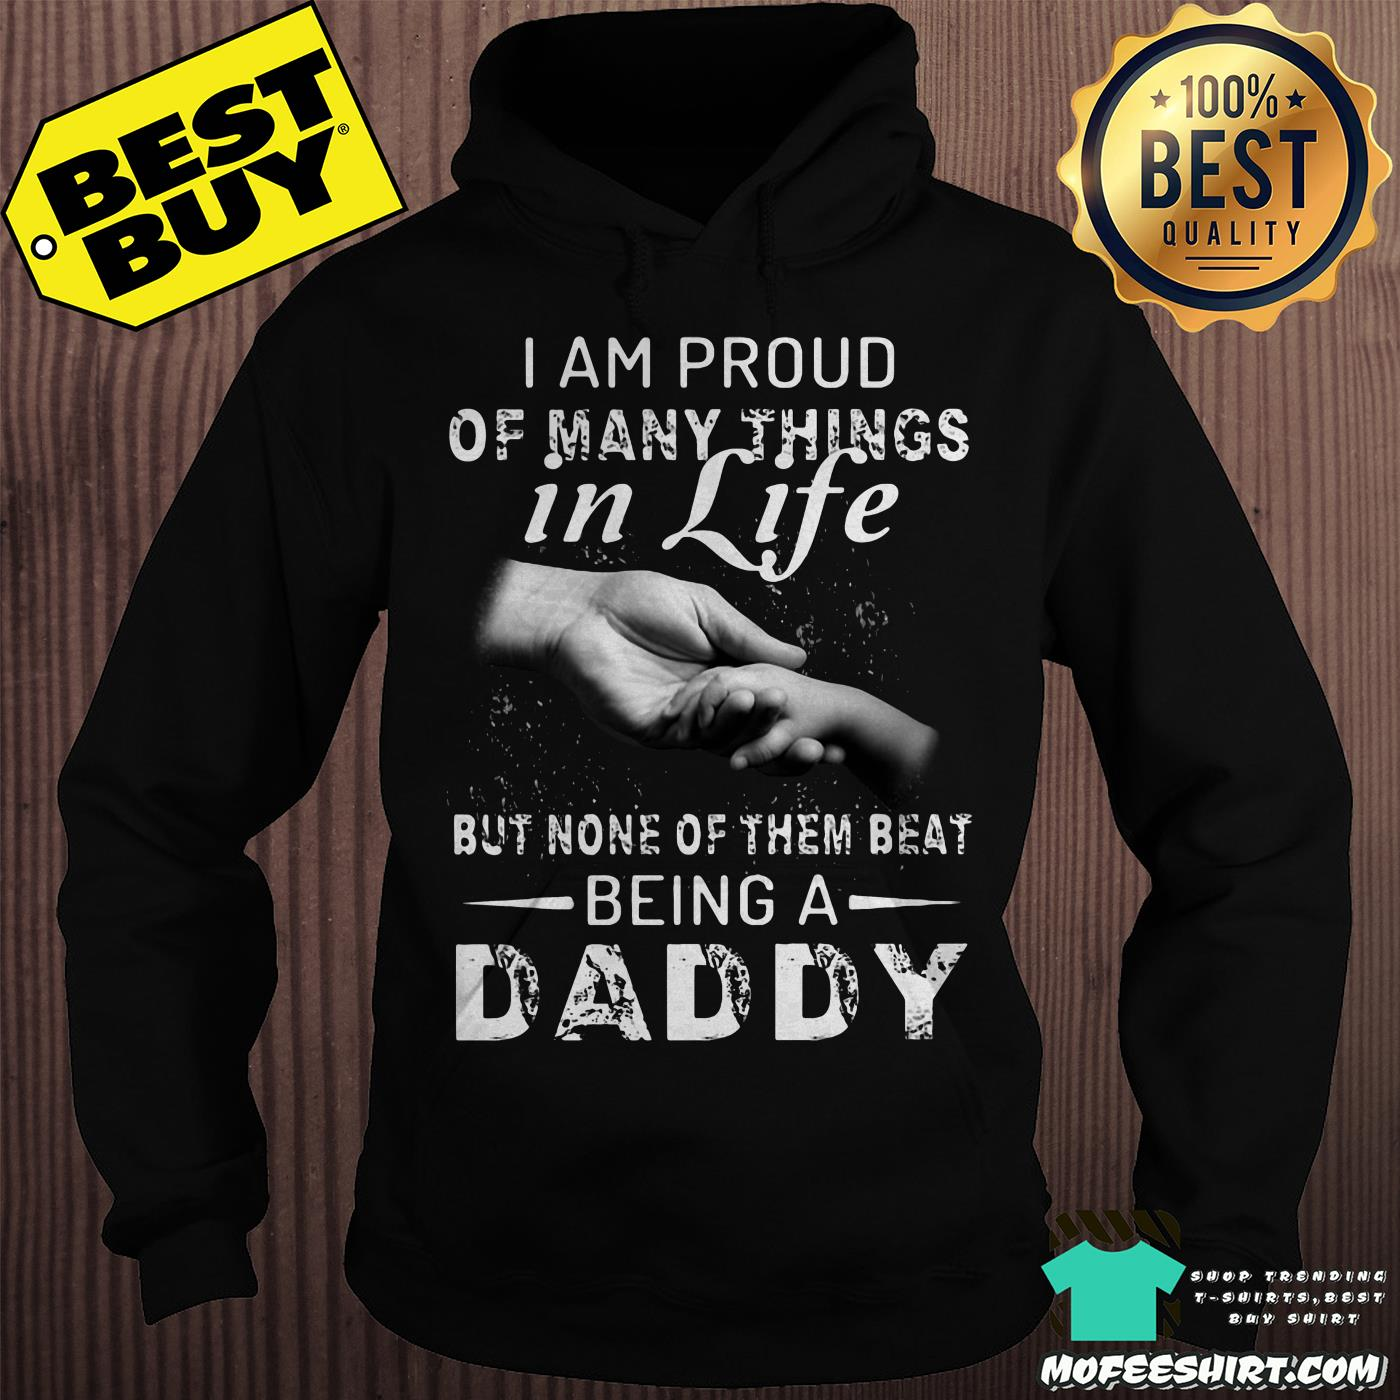 I am proud of many things in life but none of them beat being a Daddy shirt